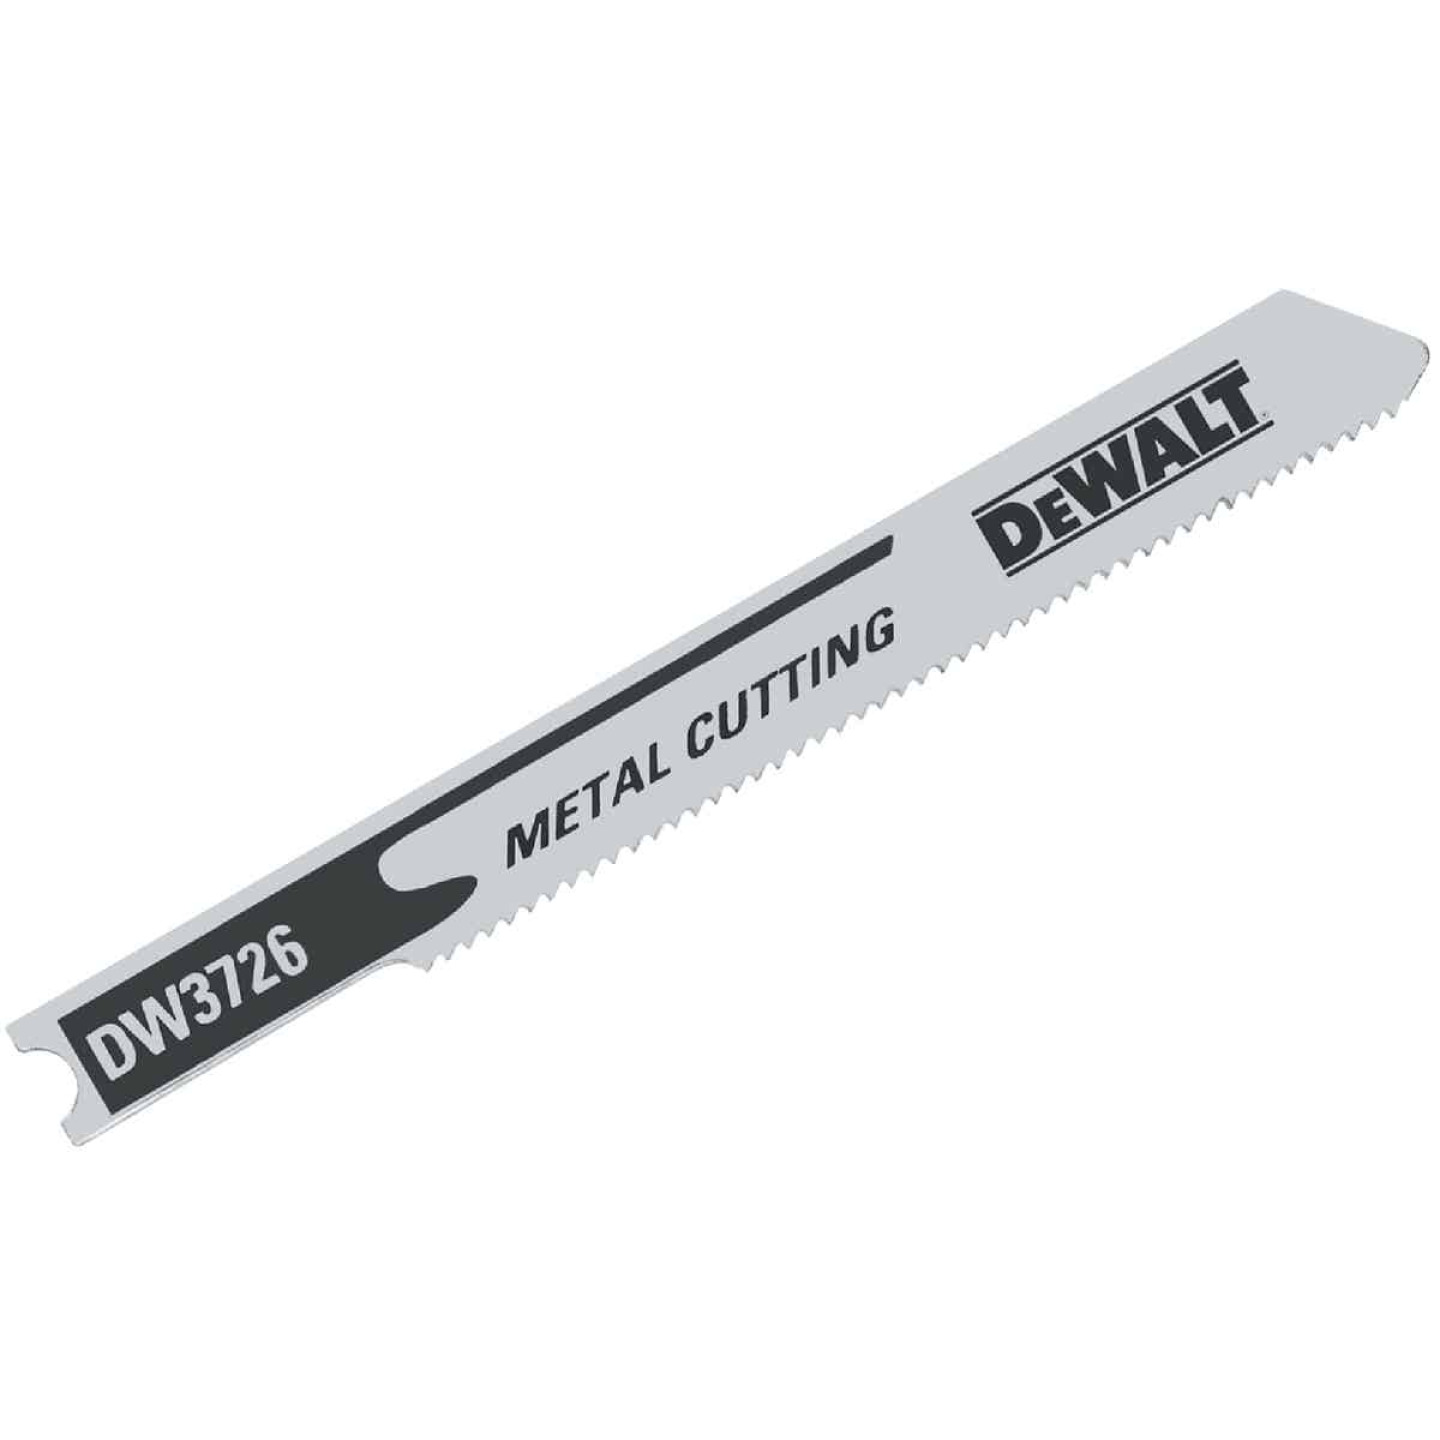 DeWalt U-Shank 3 In. x 24 TPI High Carbon Steel Jig Saw Blade, Metal (5-Pack) Image 1